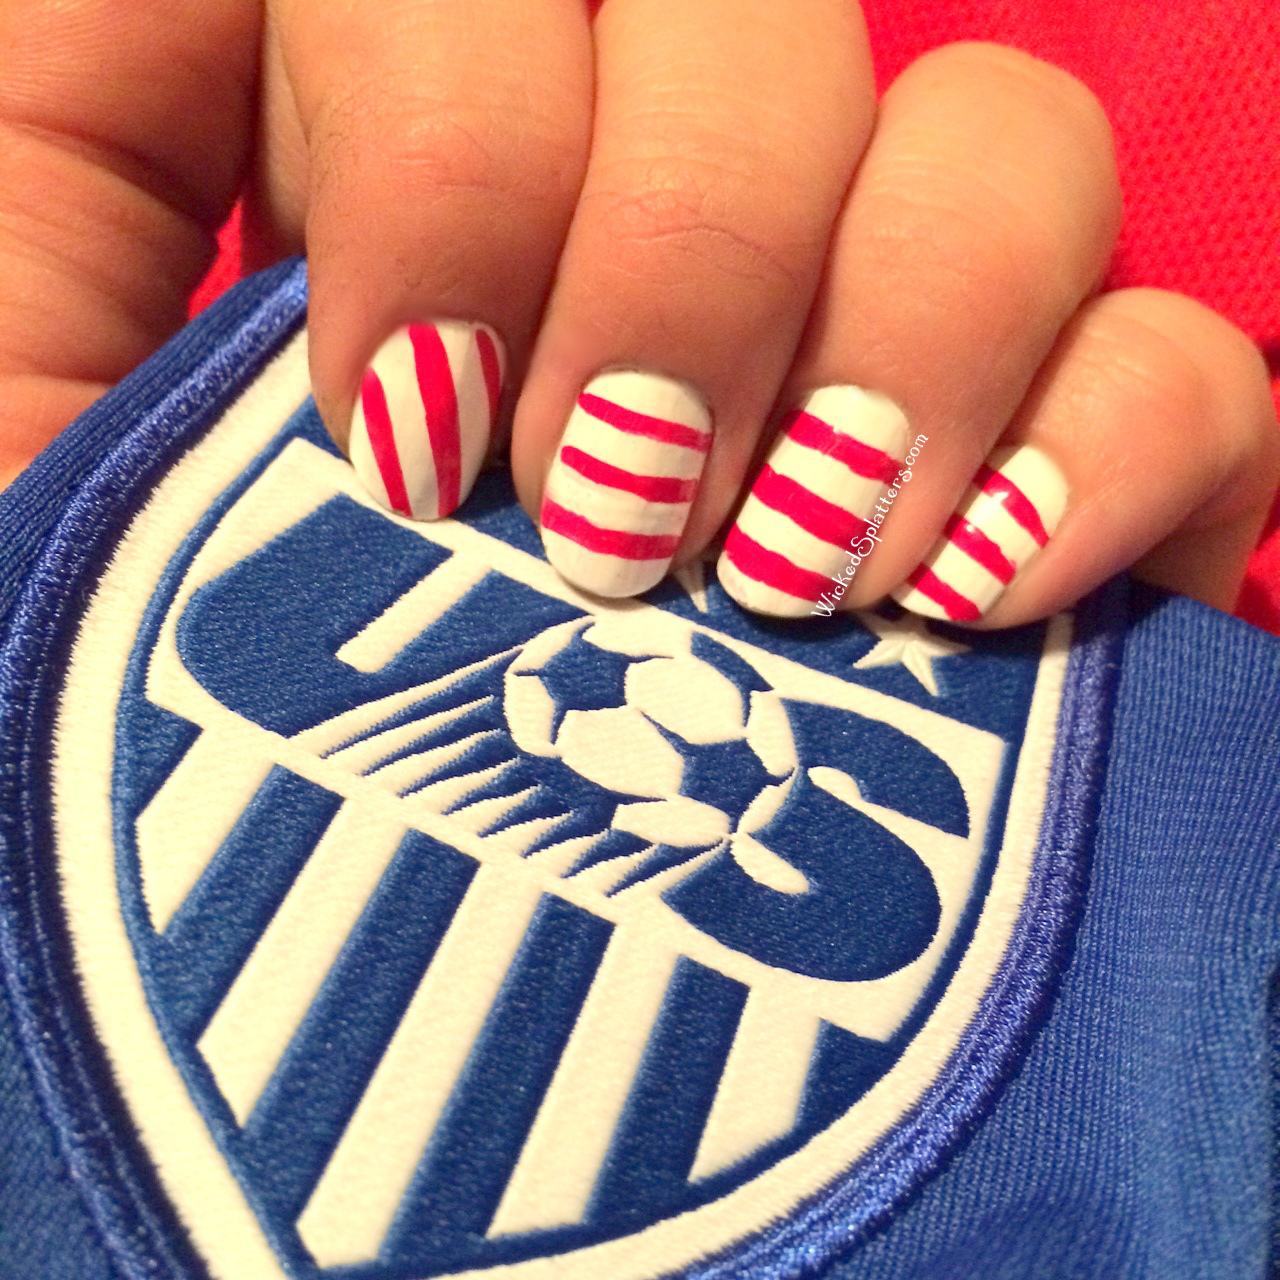 I Believe That We Can Win Usa Soccer Nails Wicked Splatters